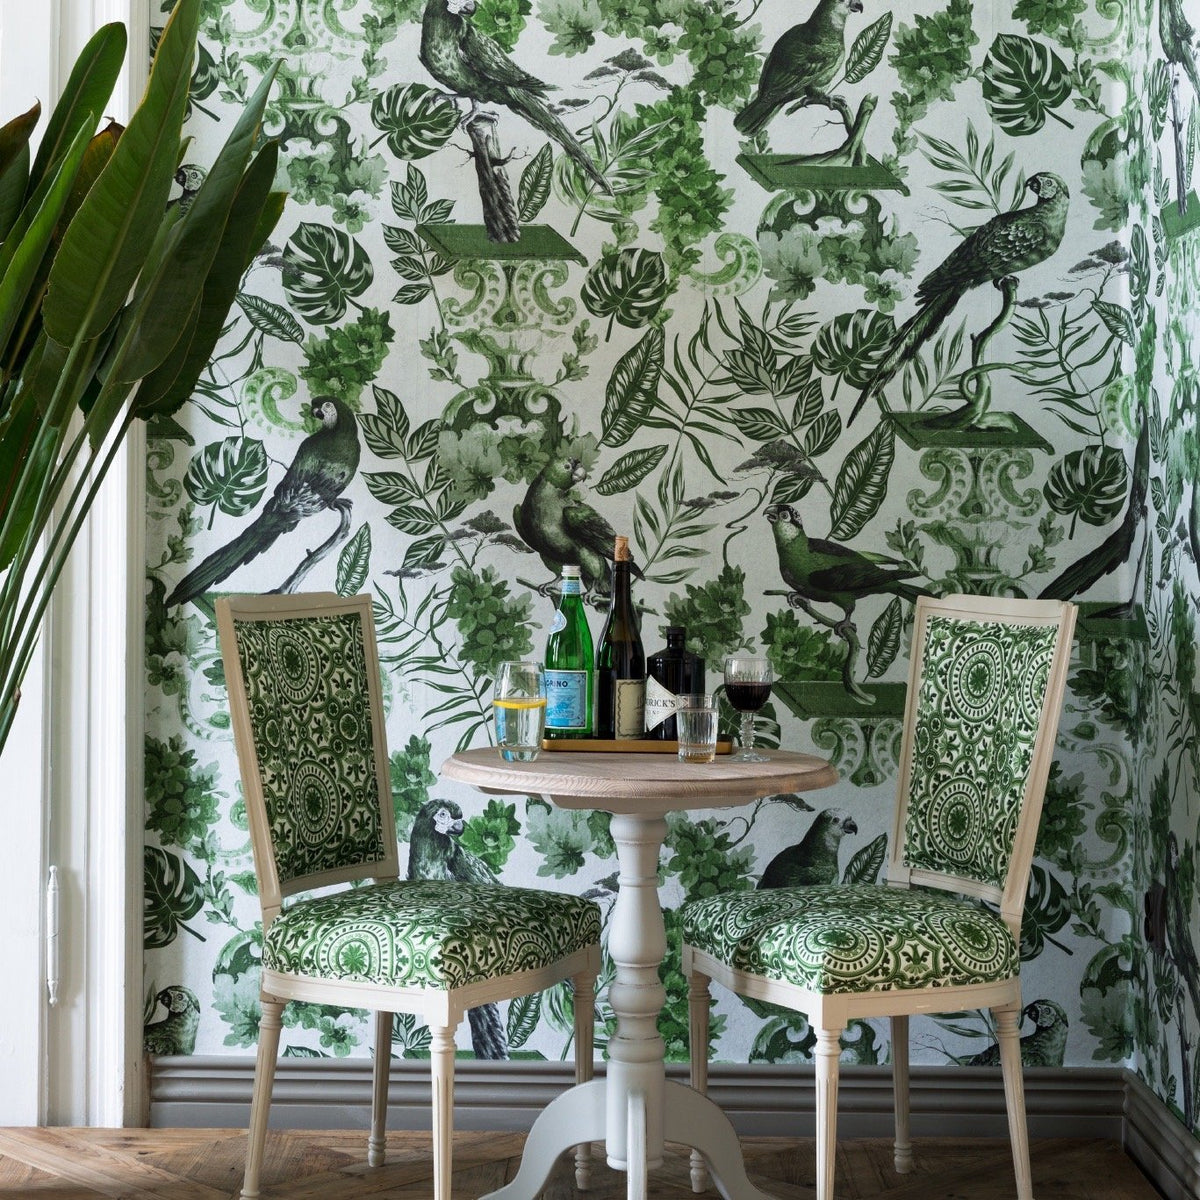 The Joyful Wallpaper Company WALLPAPER La Voliere Green Wallpaper by Mind The Gap